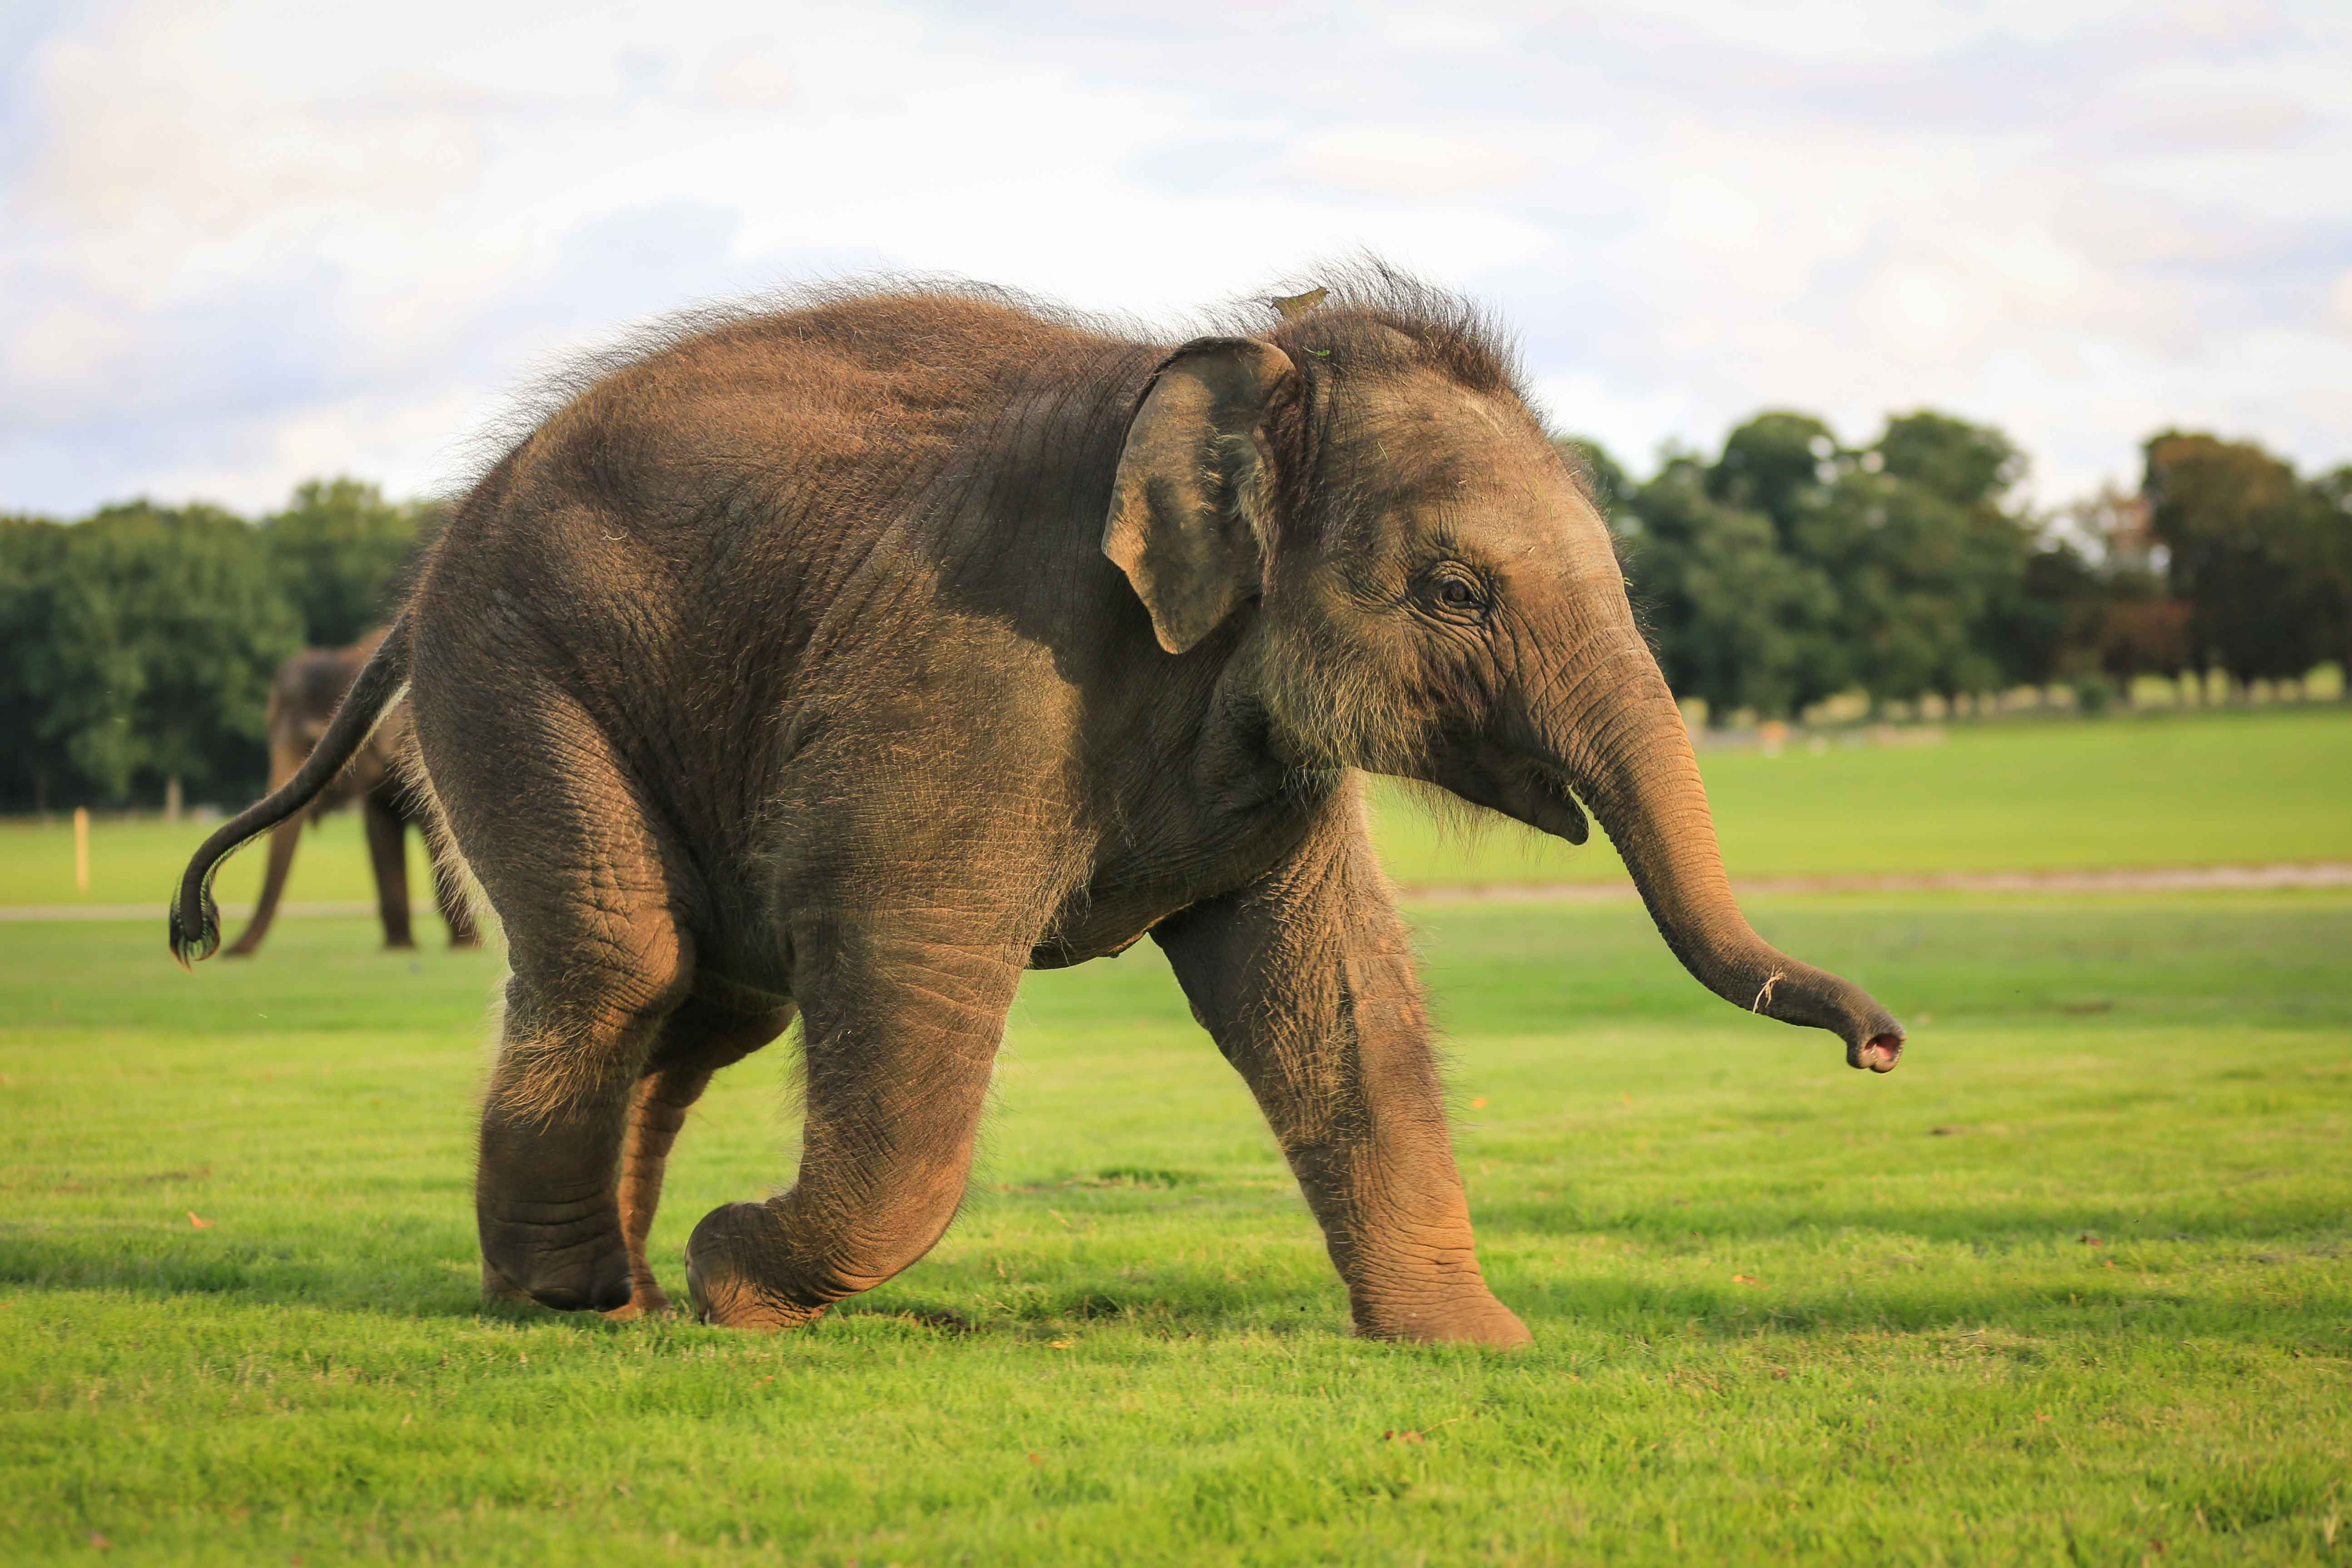 Tarli-the-Elephant-Calf-at-Woburn-Safari-Park1.jpg